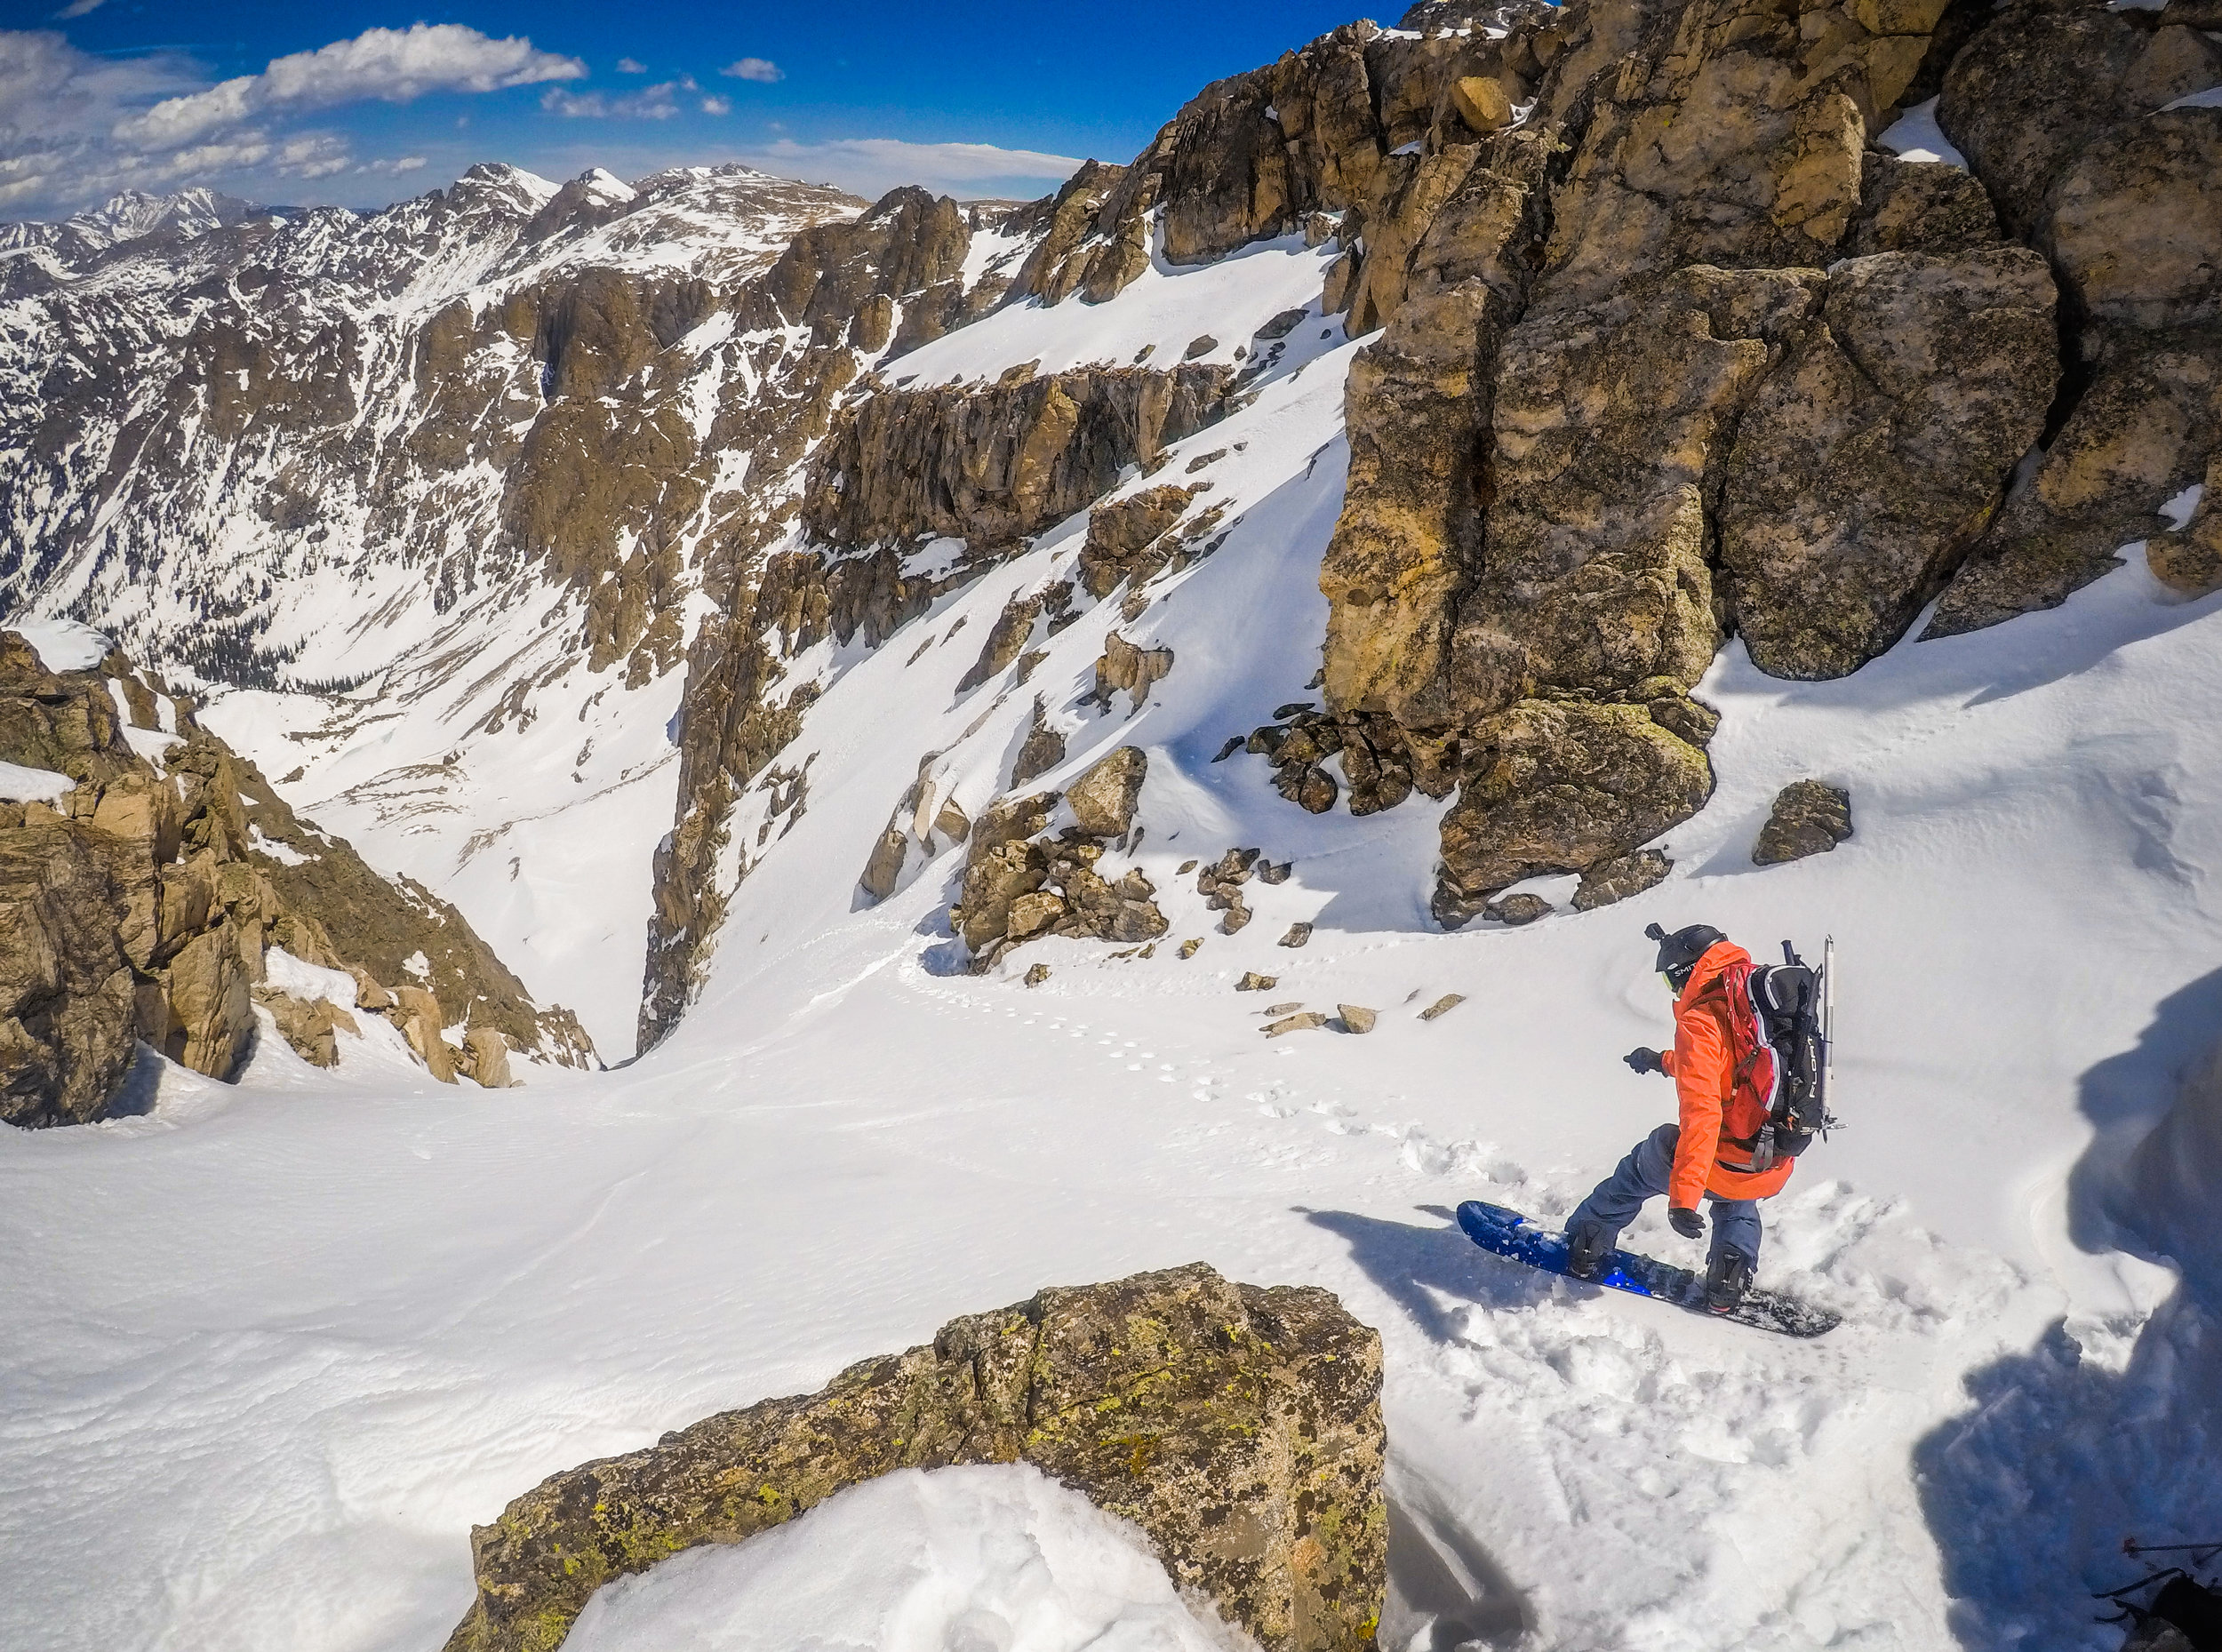 Dropping into the Mount George Couloir.